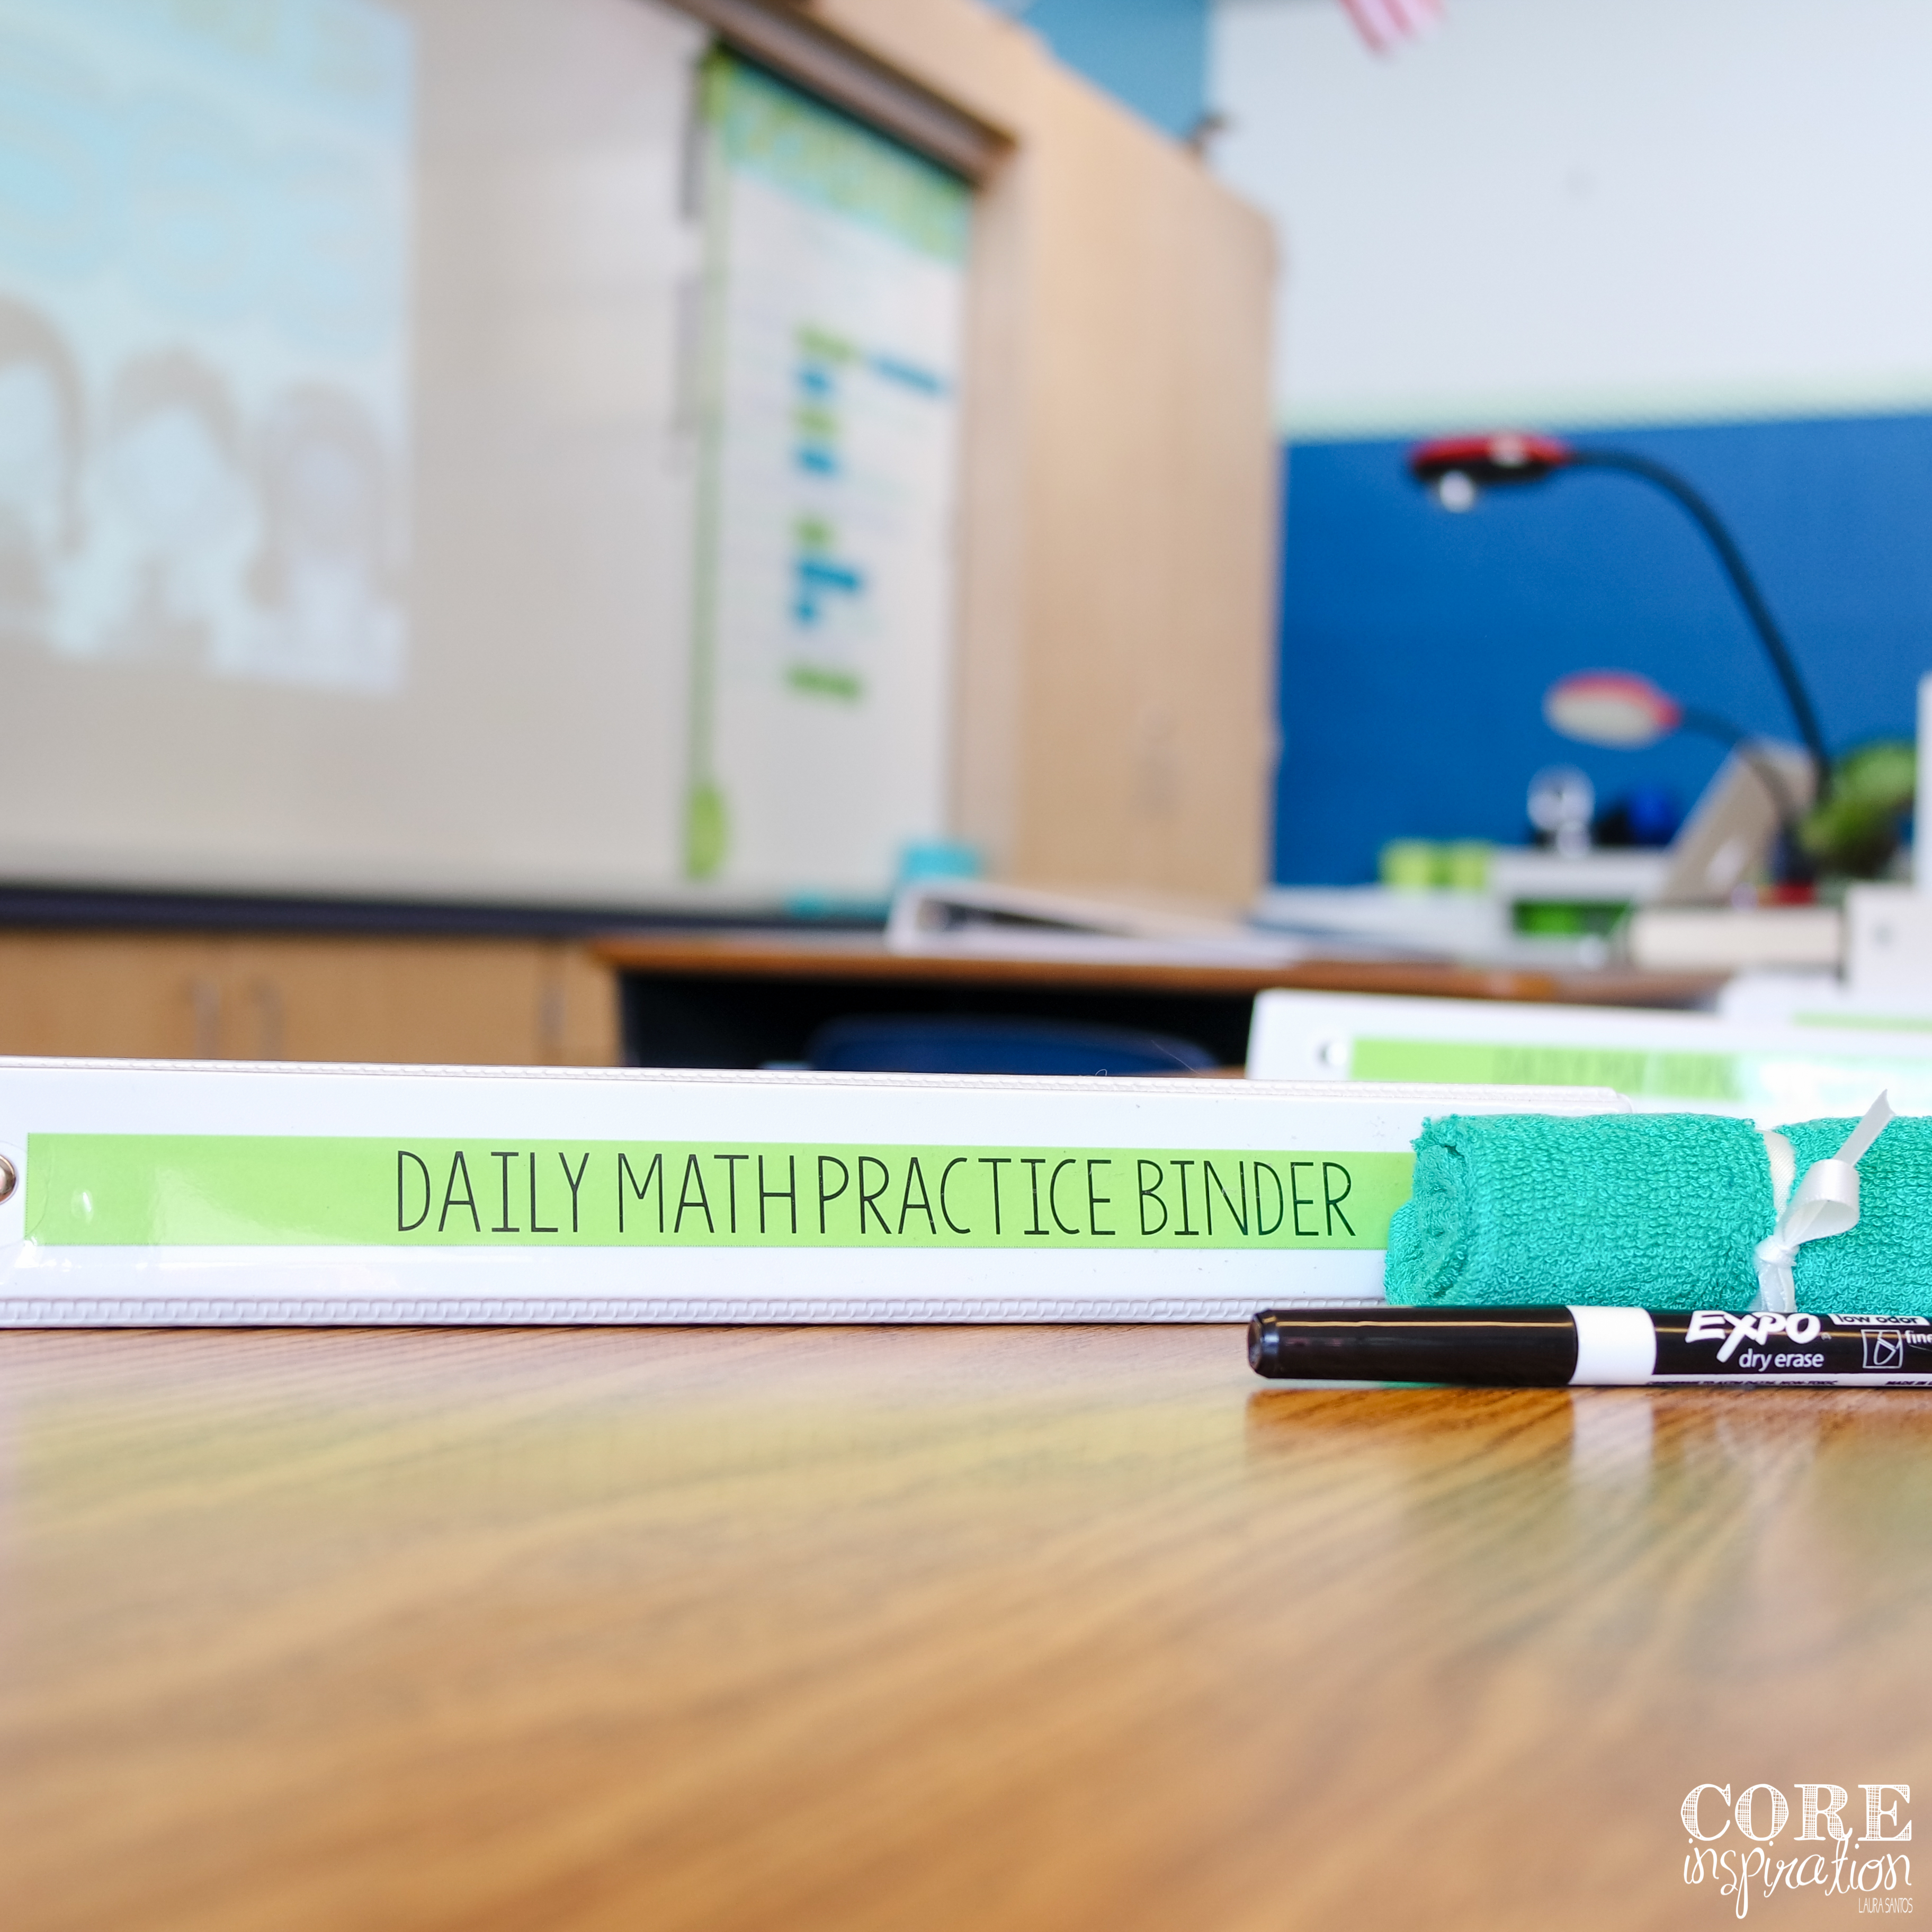 Core Inspiration's Number of the Day Binder supplies on student desk